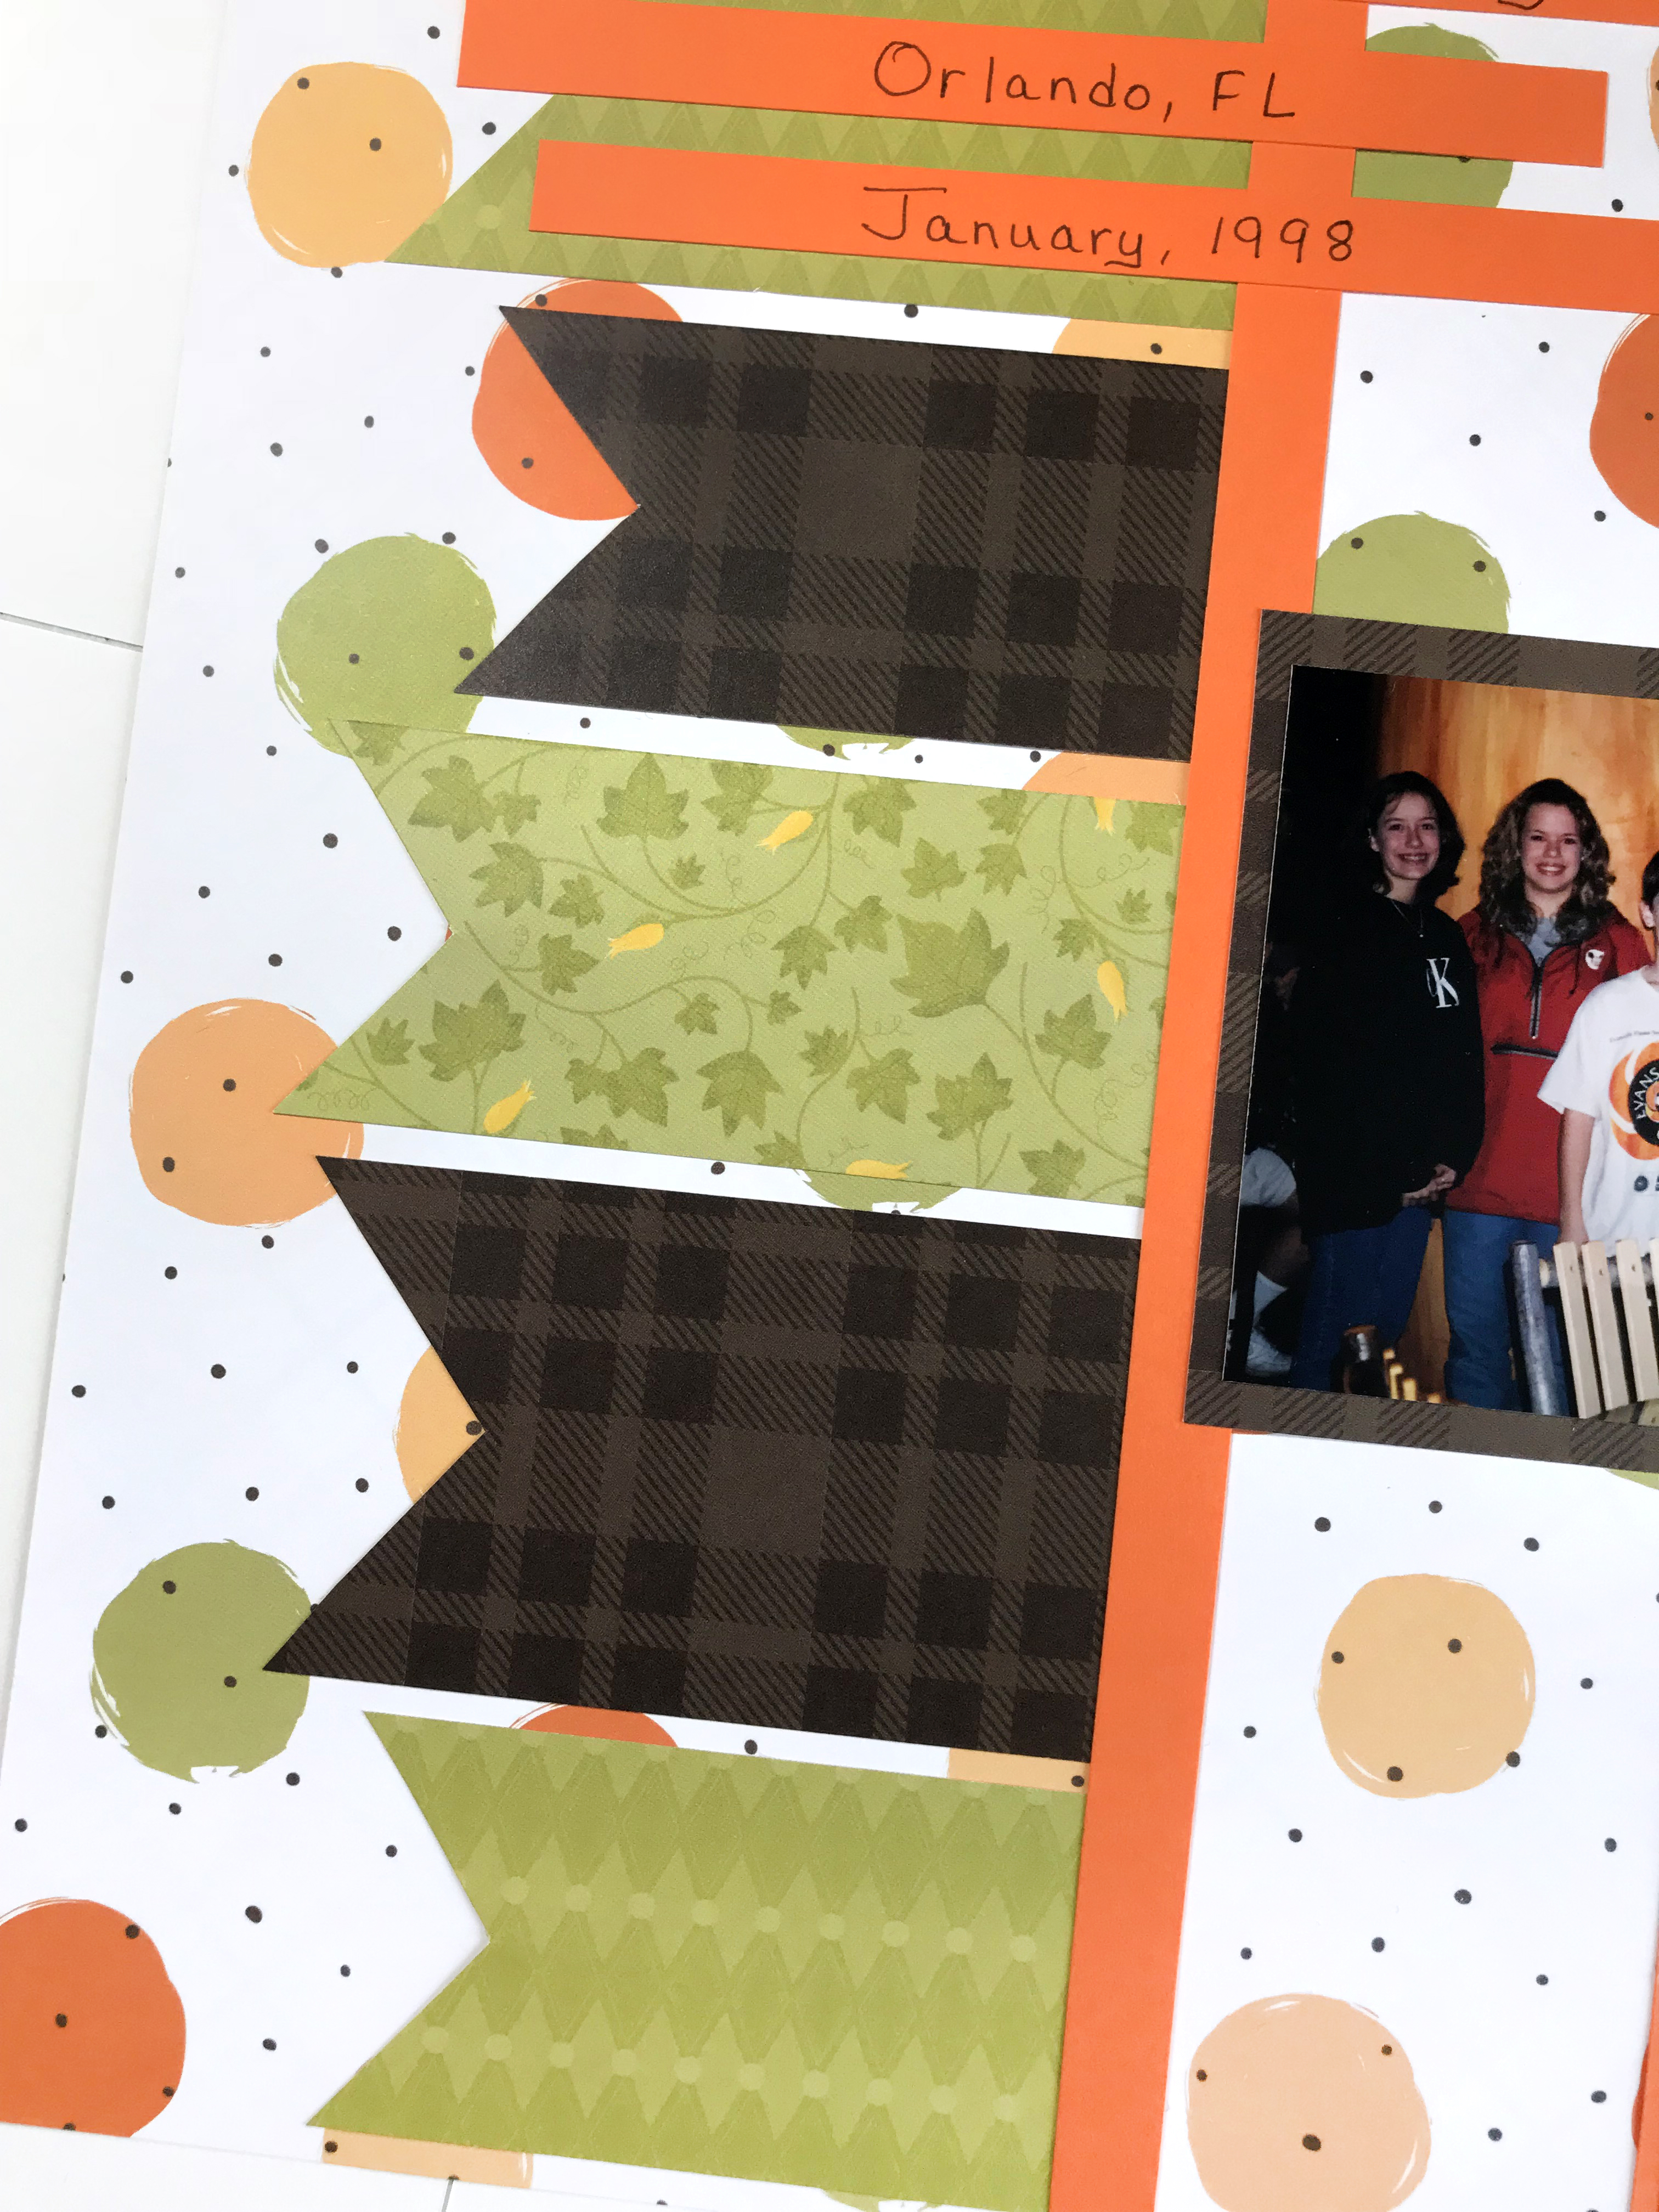 Pumpkin-Spice-Scrapbook-Sketch-Layout-Process1-Creative-Memories